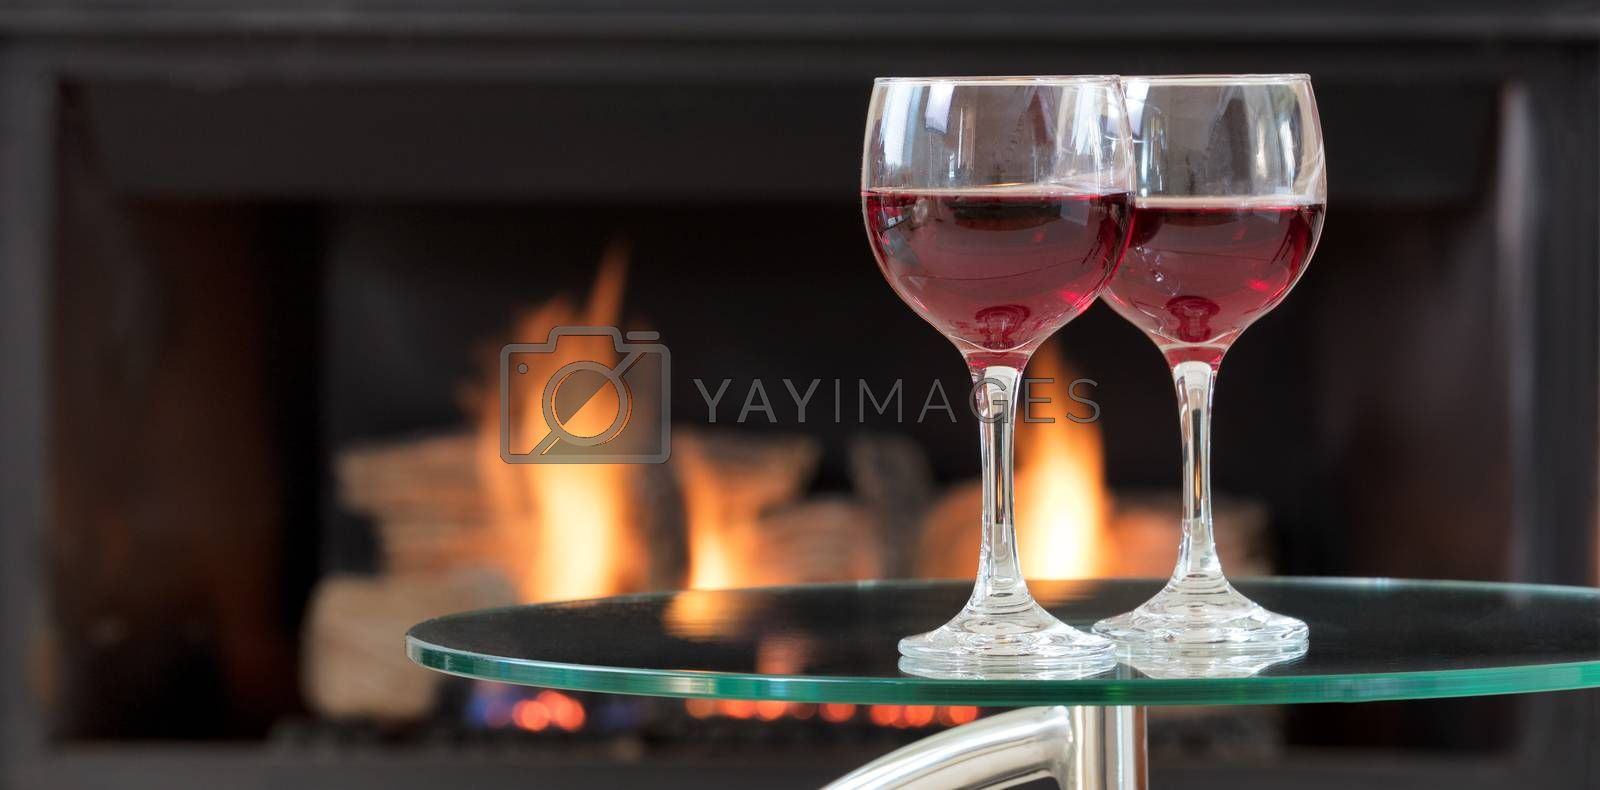 Two glasses of red wine on top of glass table with glowing fireplace in background